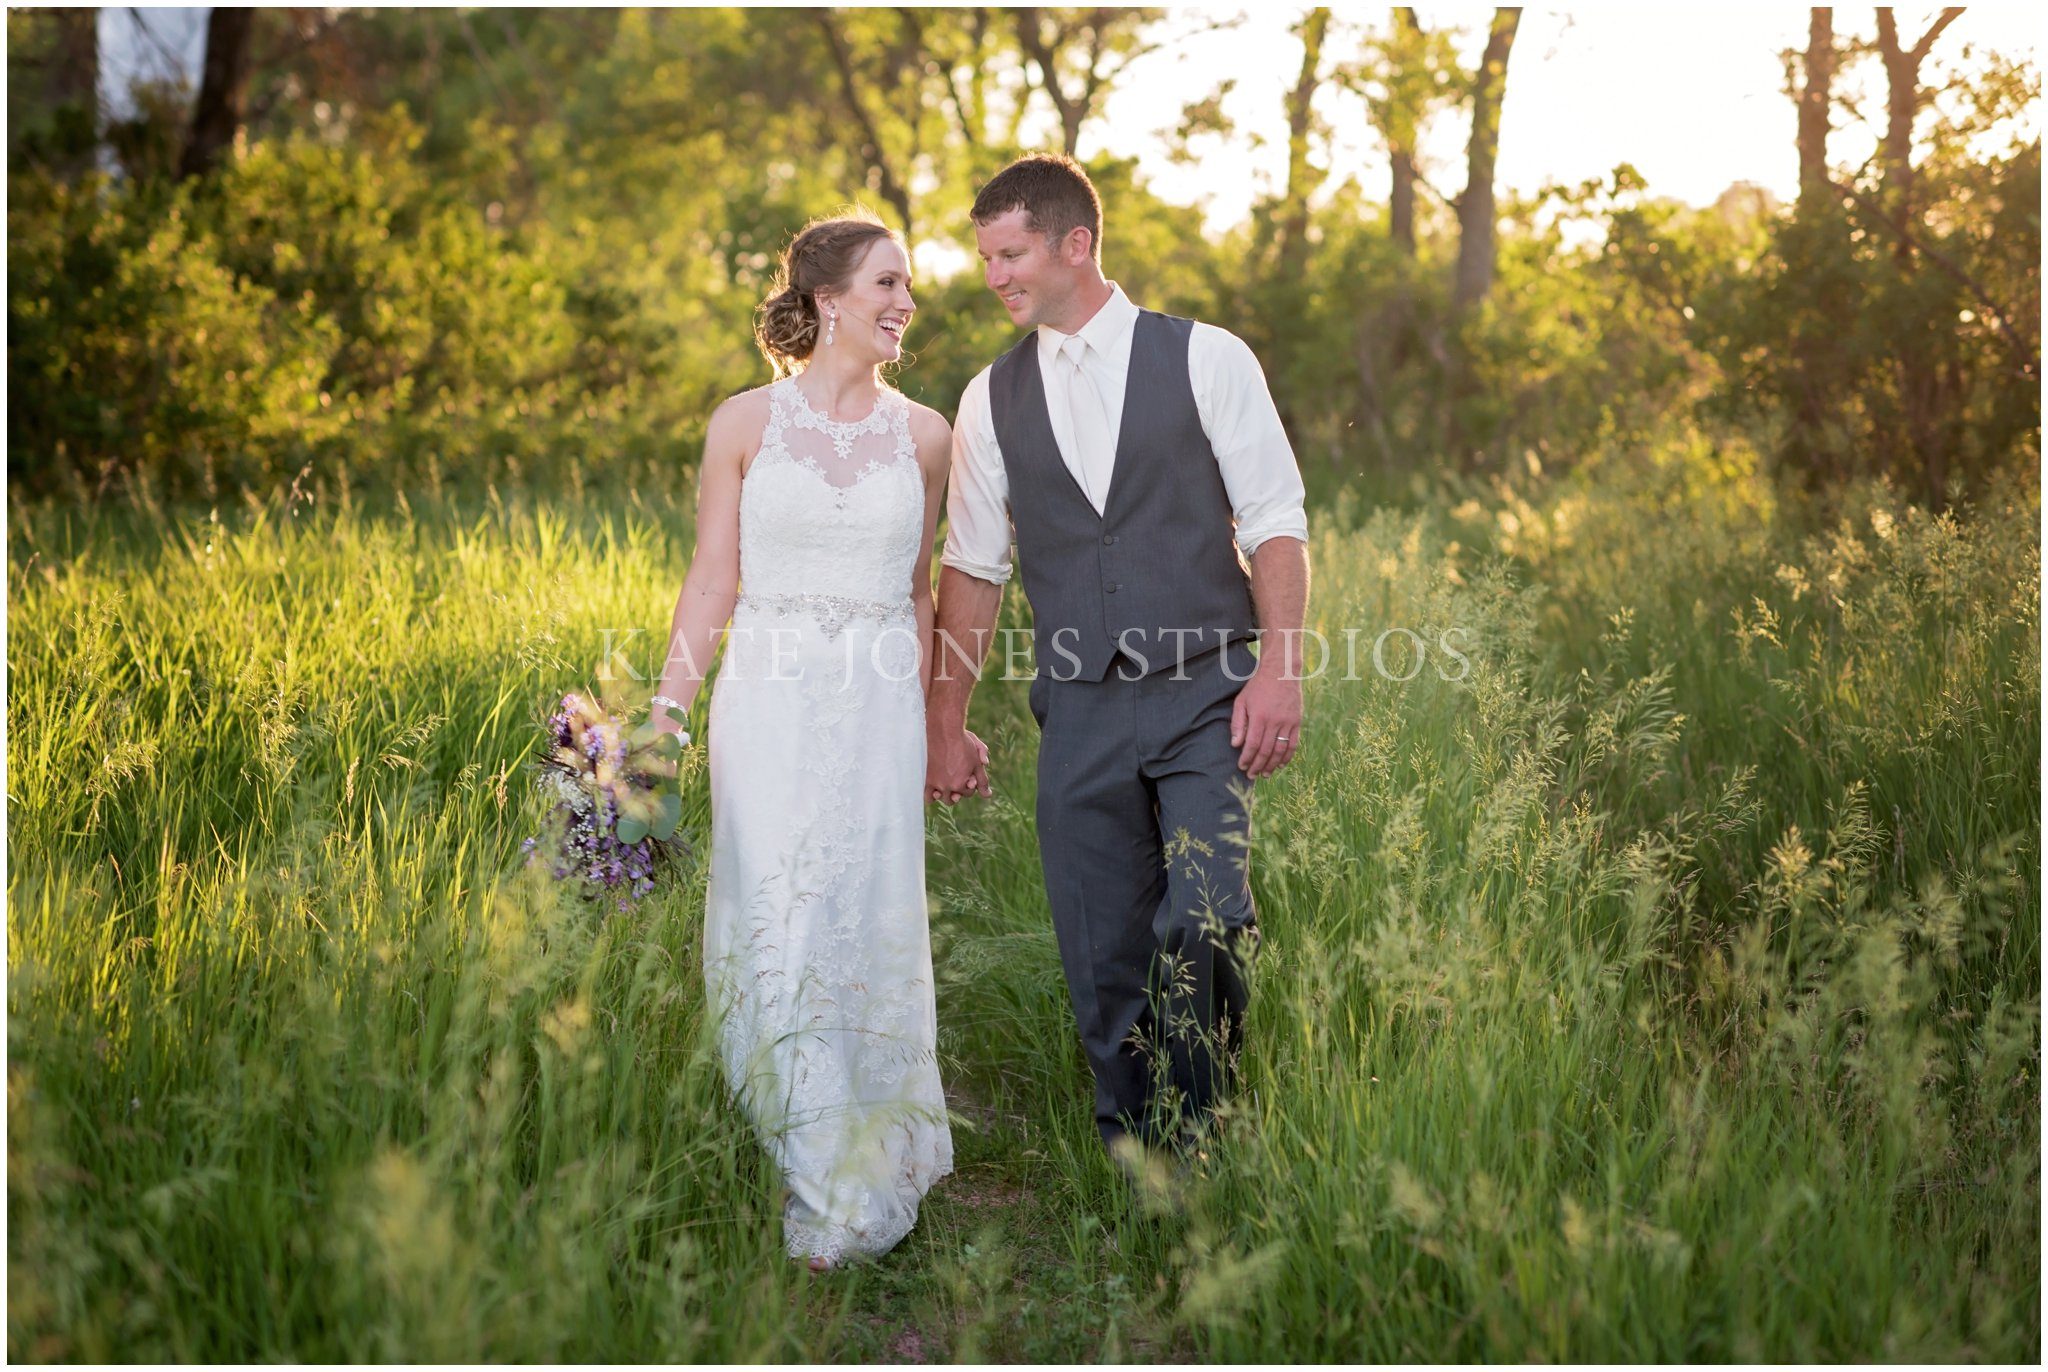 bride groom laughing in field on wedding day